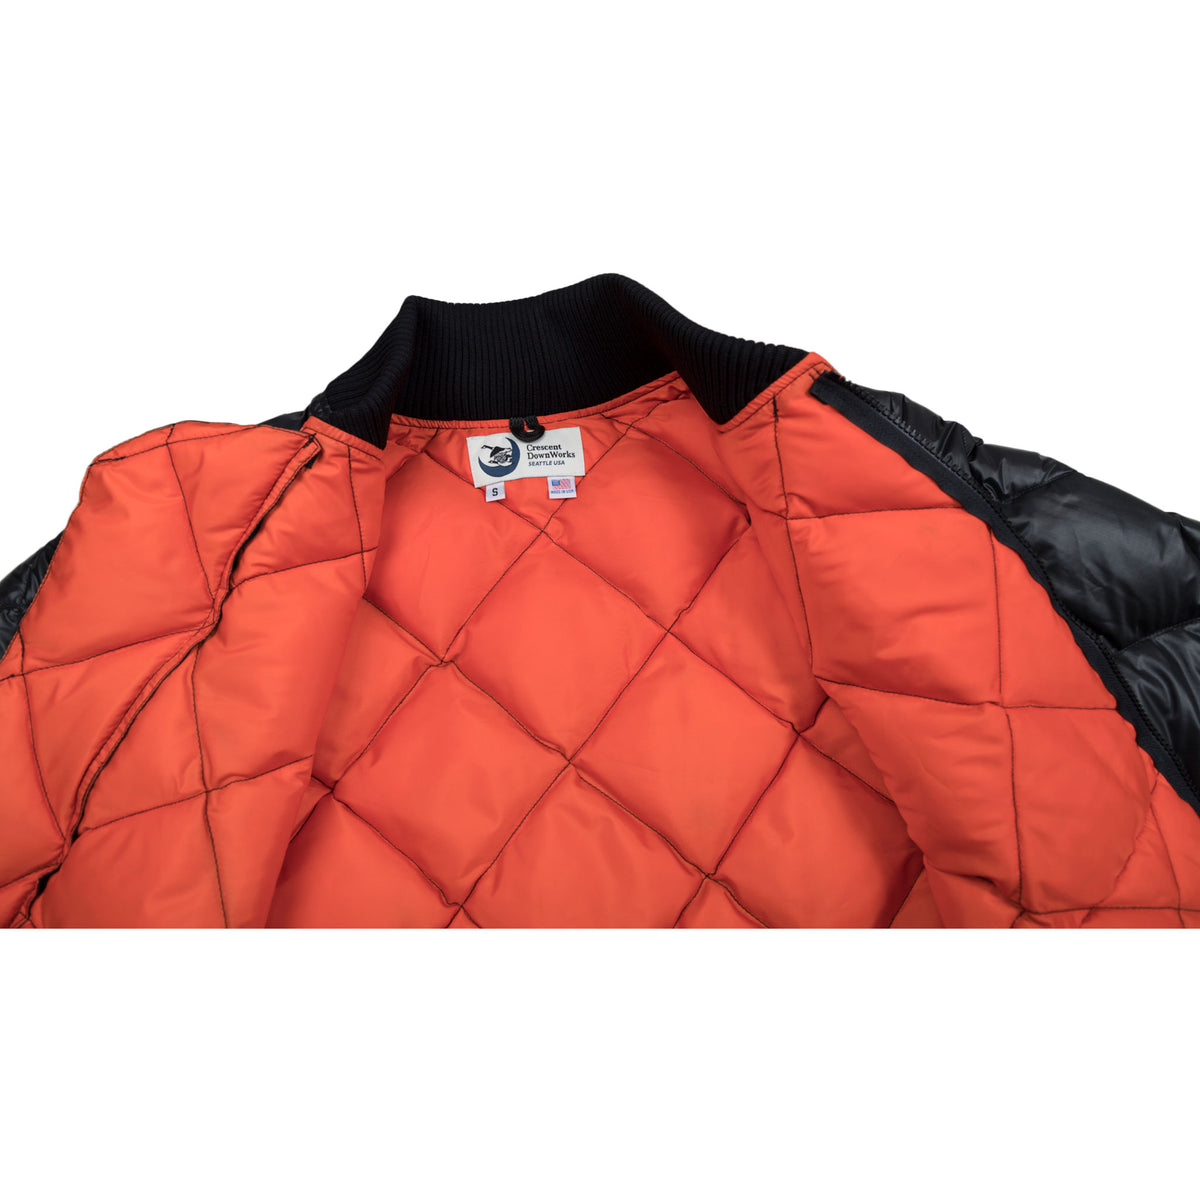 Crescent Down Works Diagonal Quilt Jacket Black